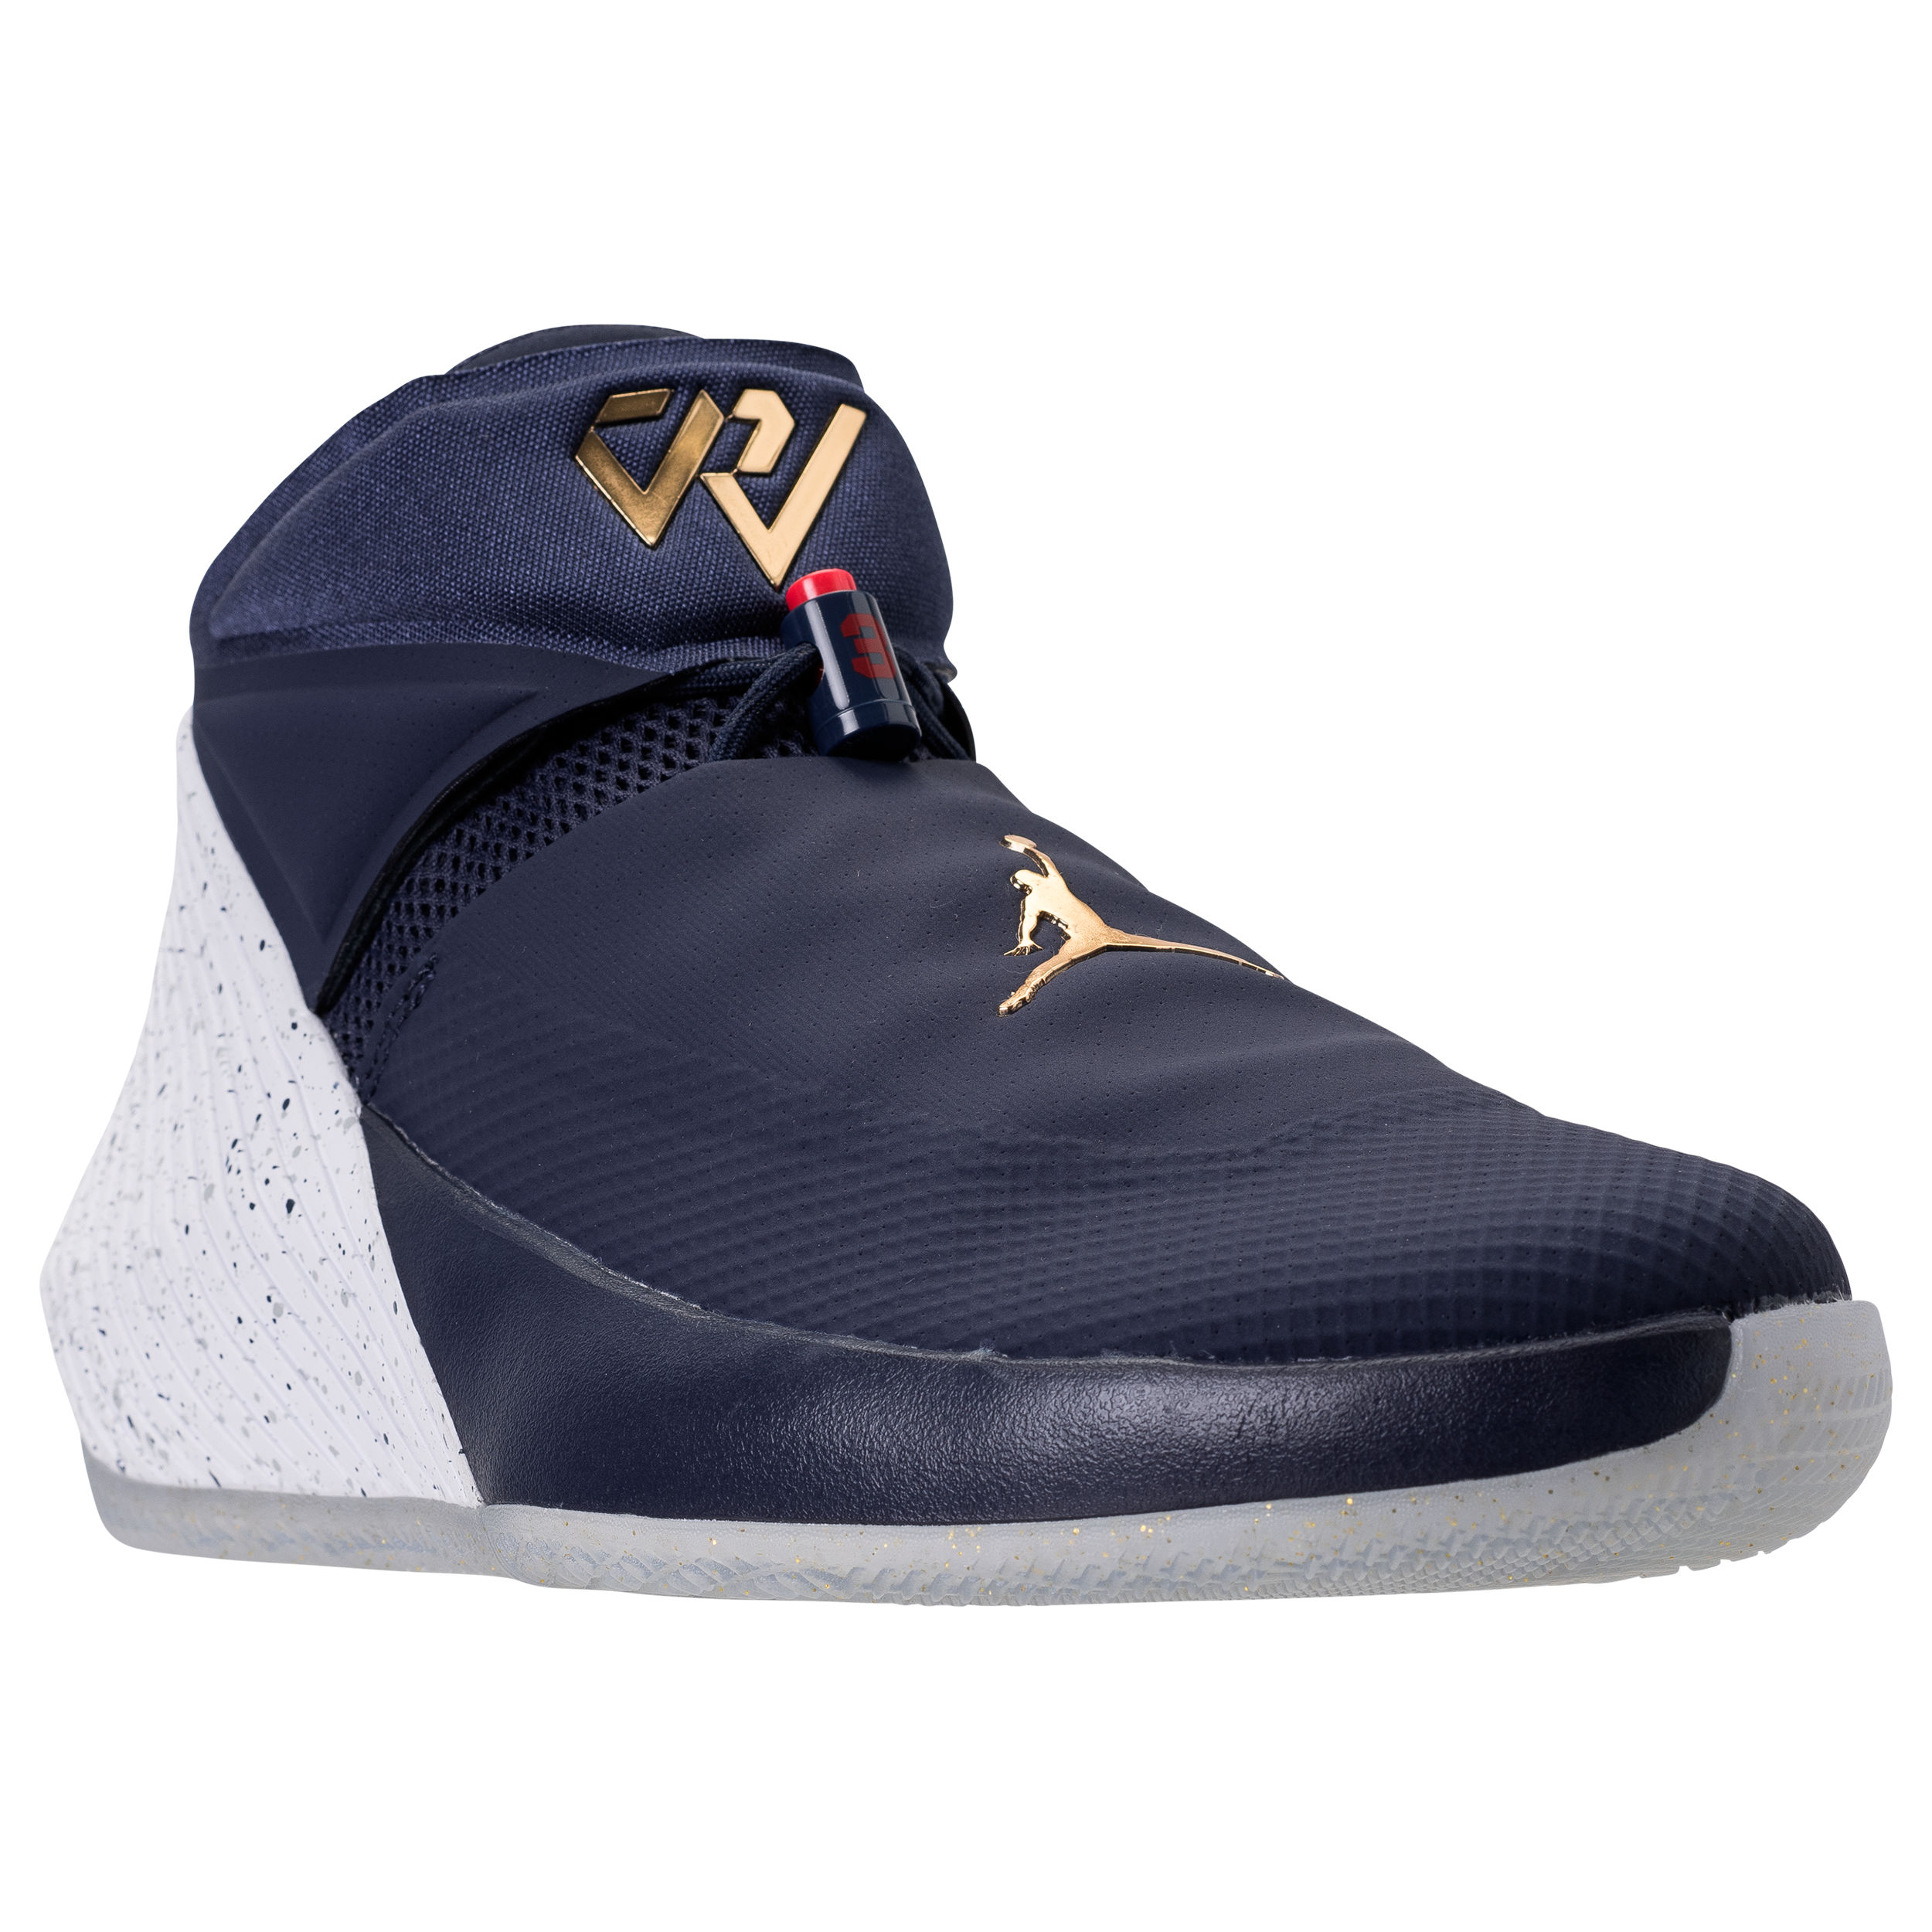 jordan why not zer0.1 midnight navy